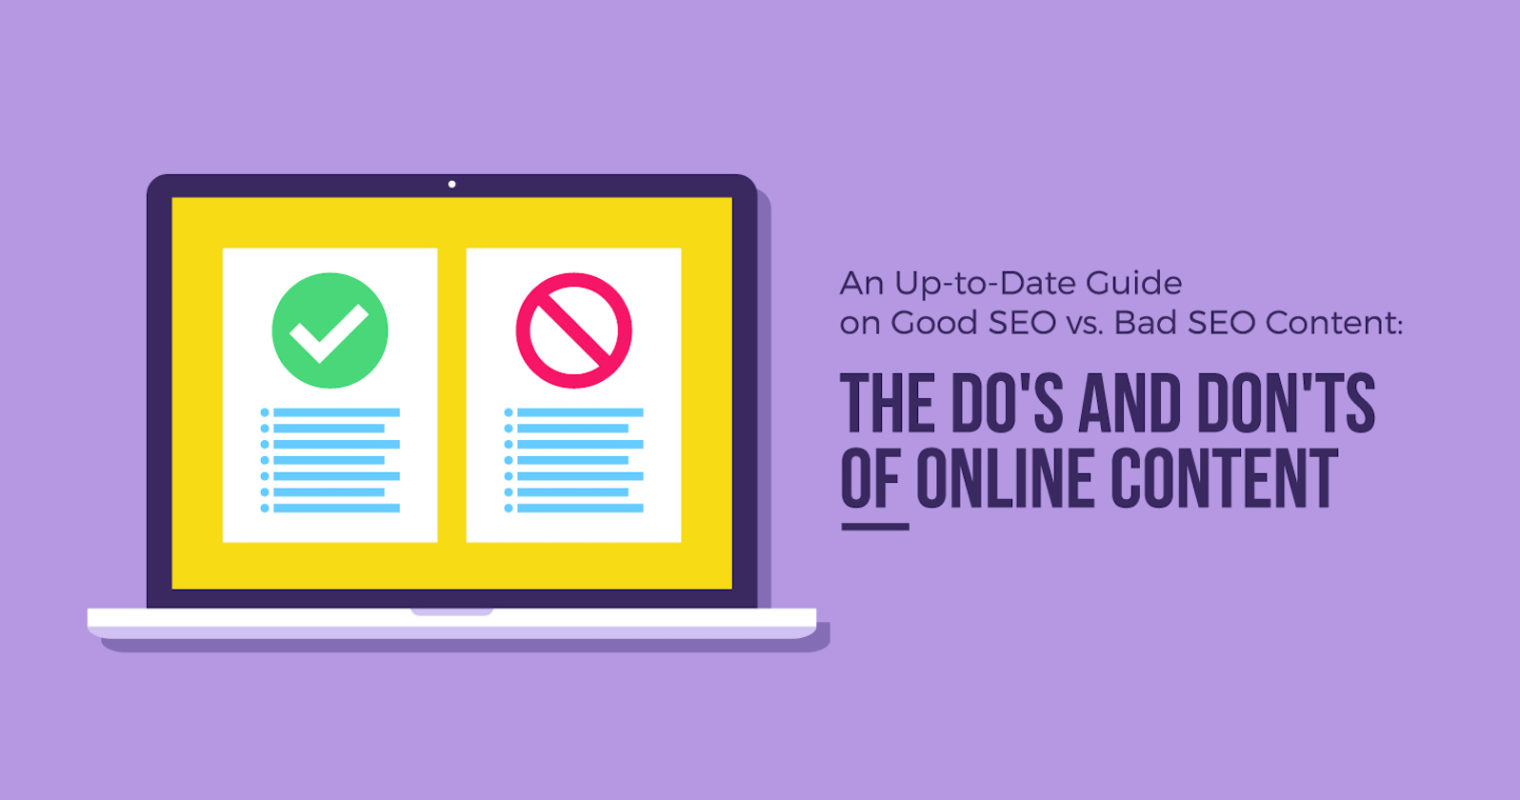 An Up-to-Date Guide on Good SEO Content vs. Bad SEO Content